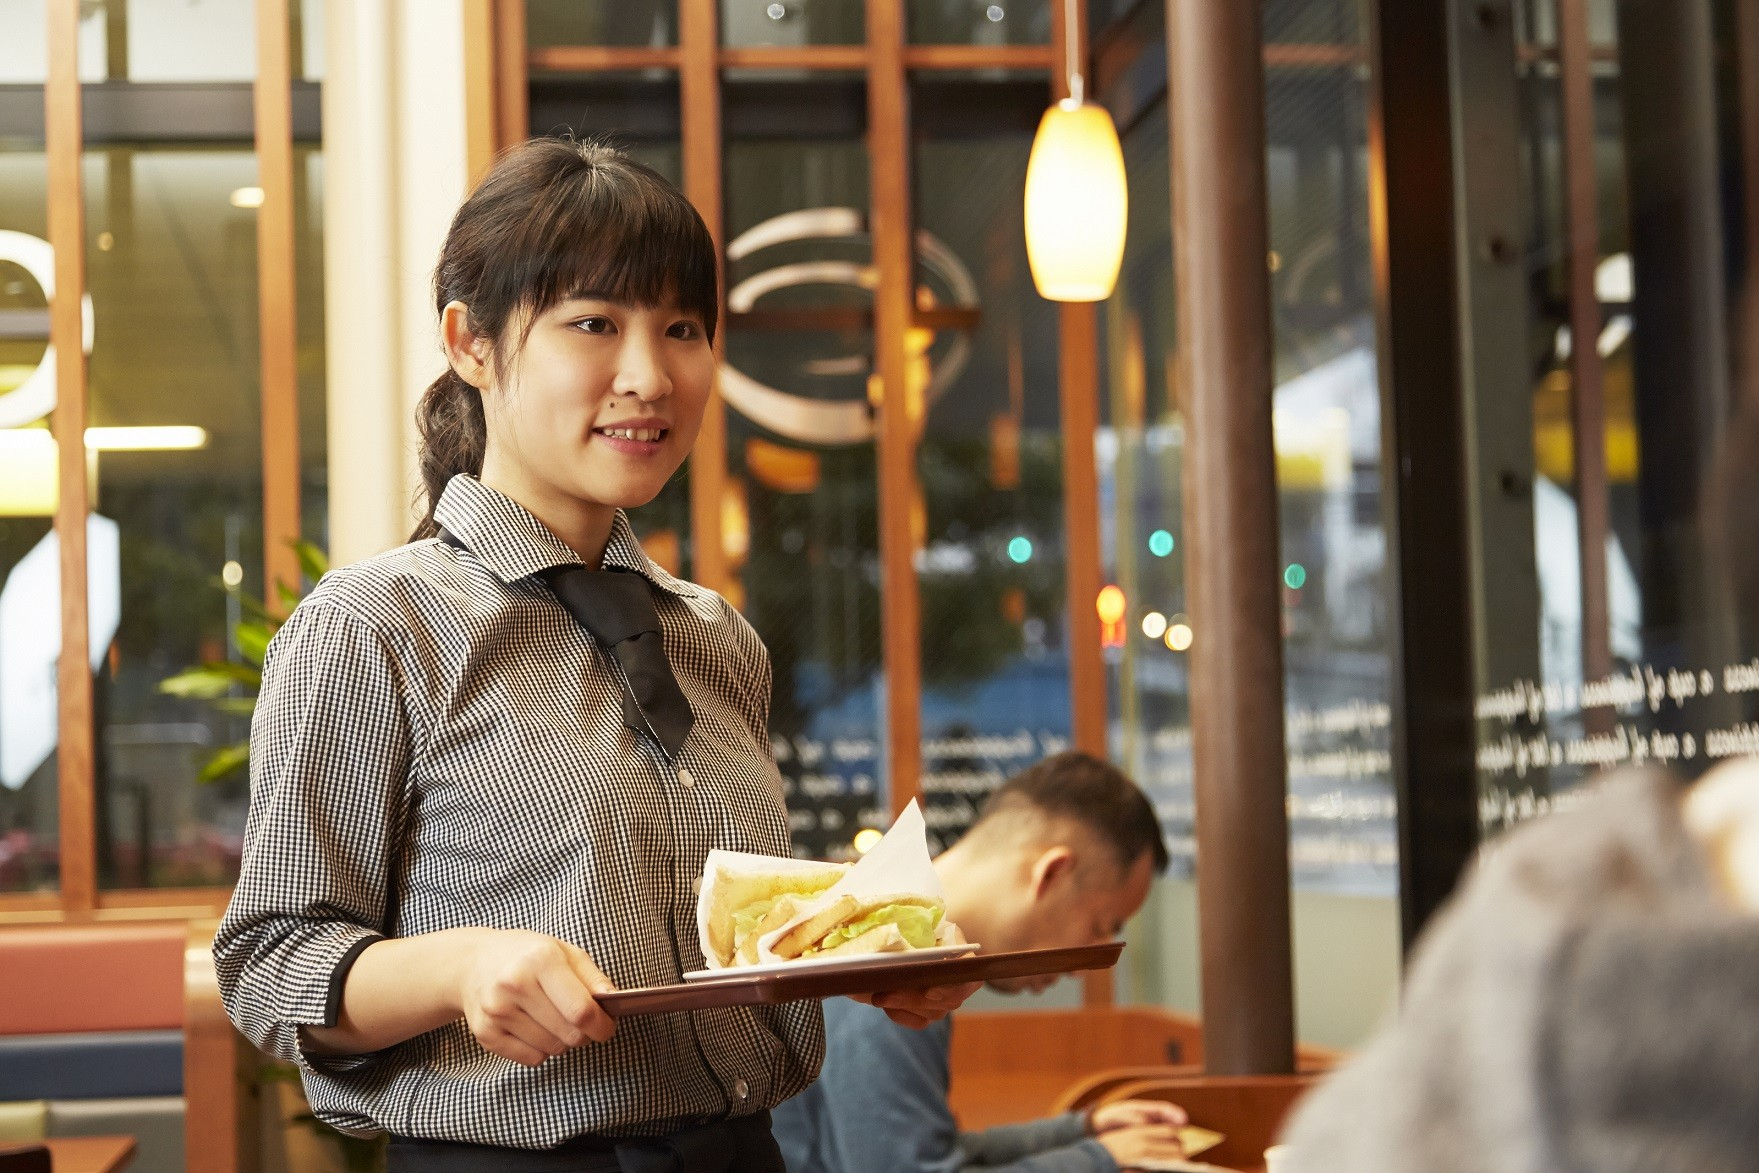 CAFE de CRIE(カフェ・ド・クリエ) 三田2丁目のアルバイト情報